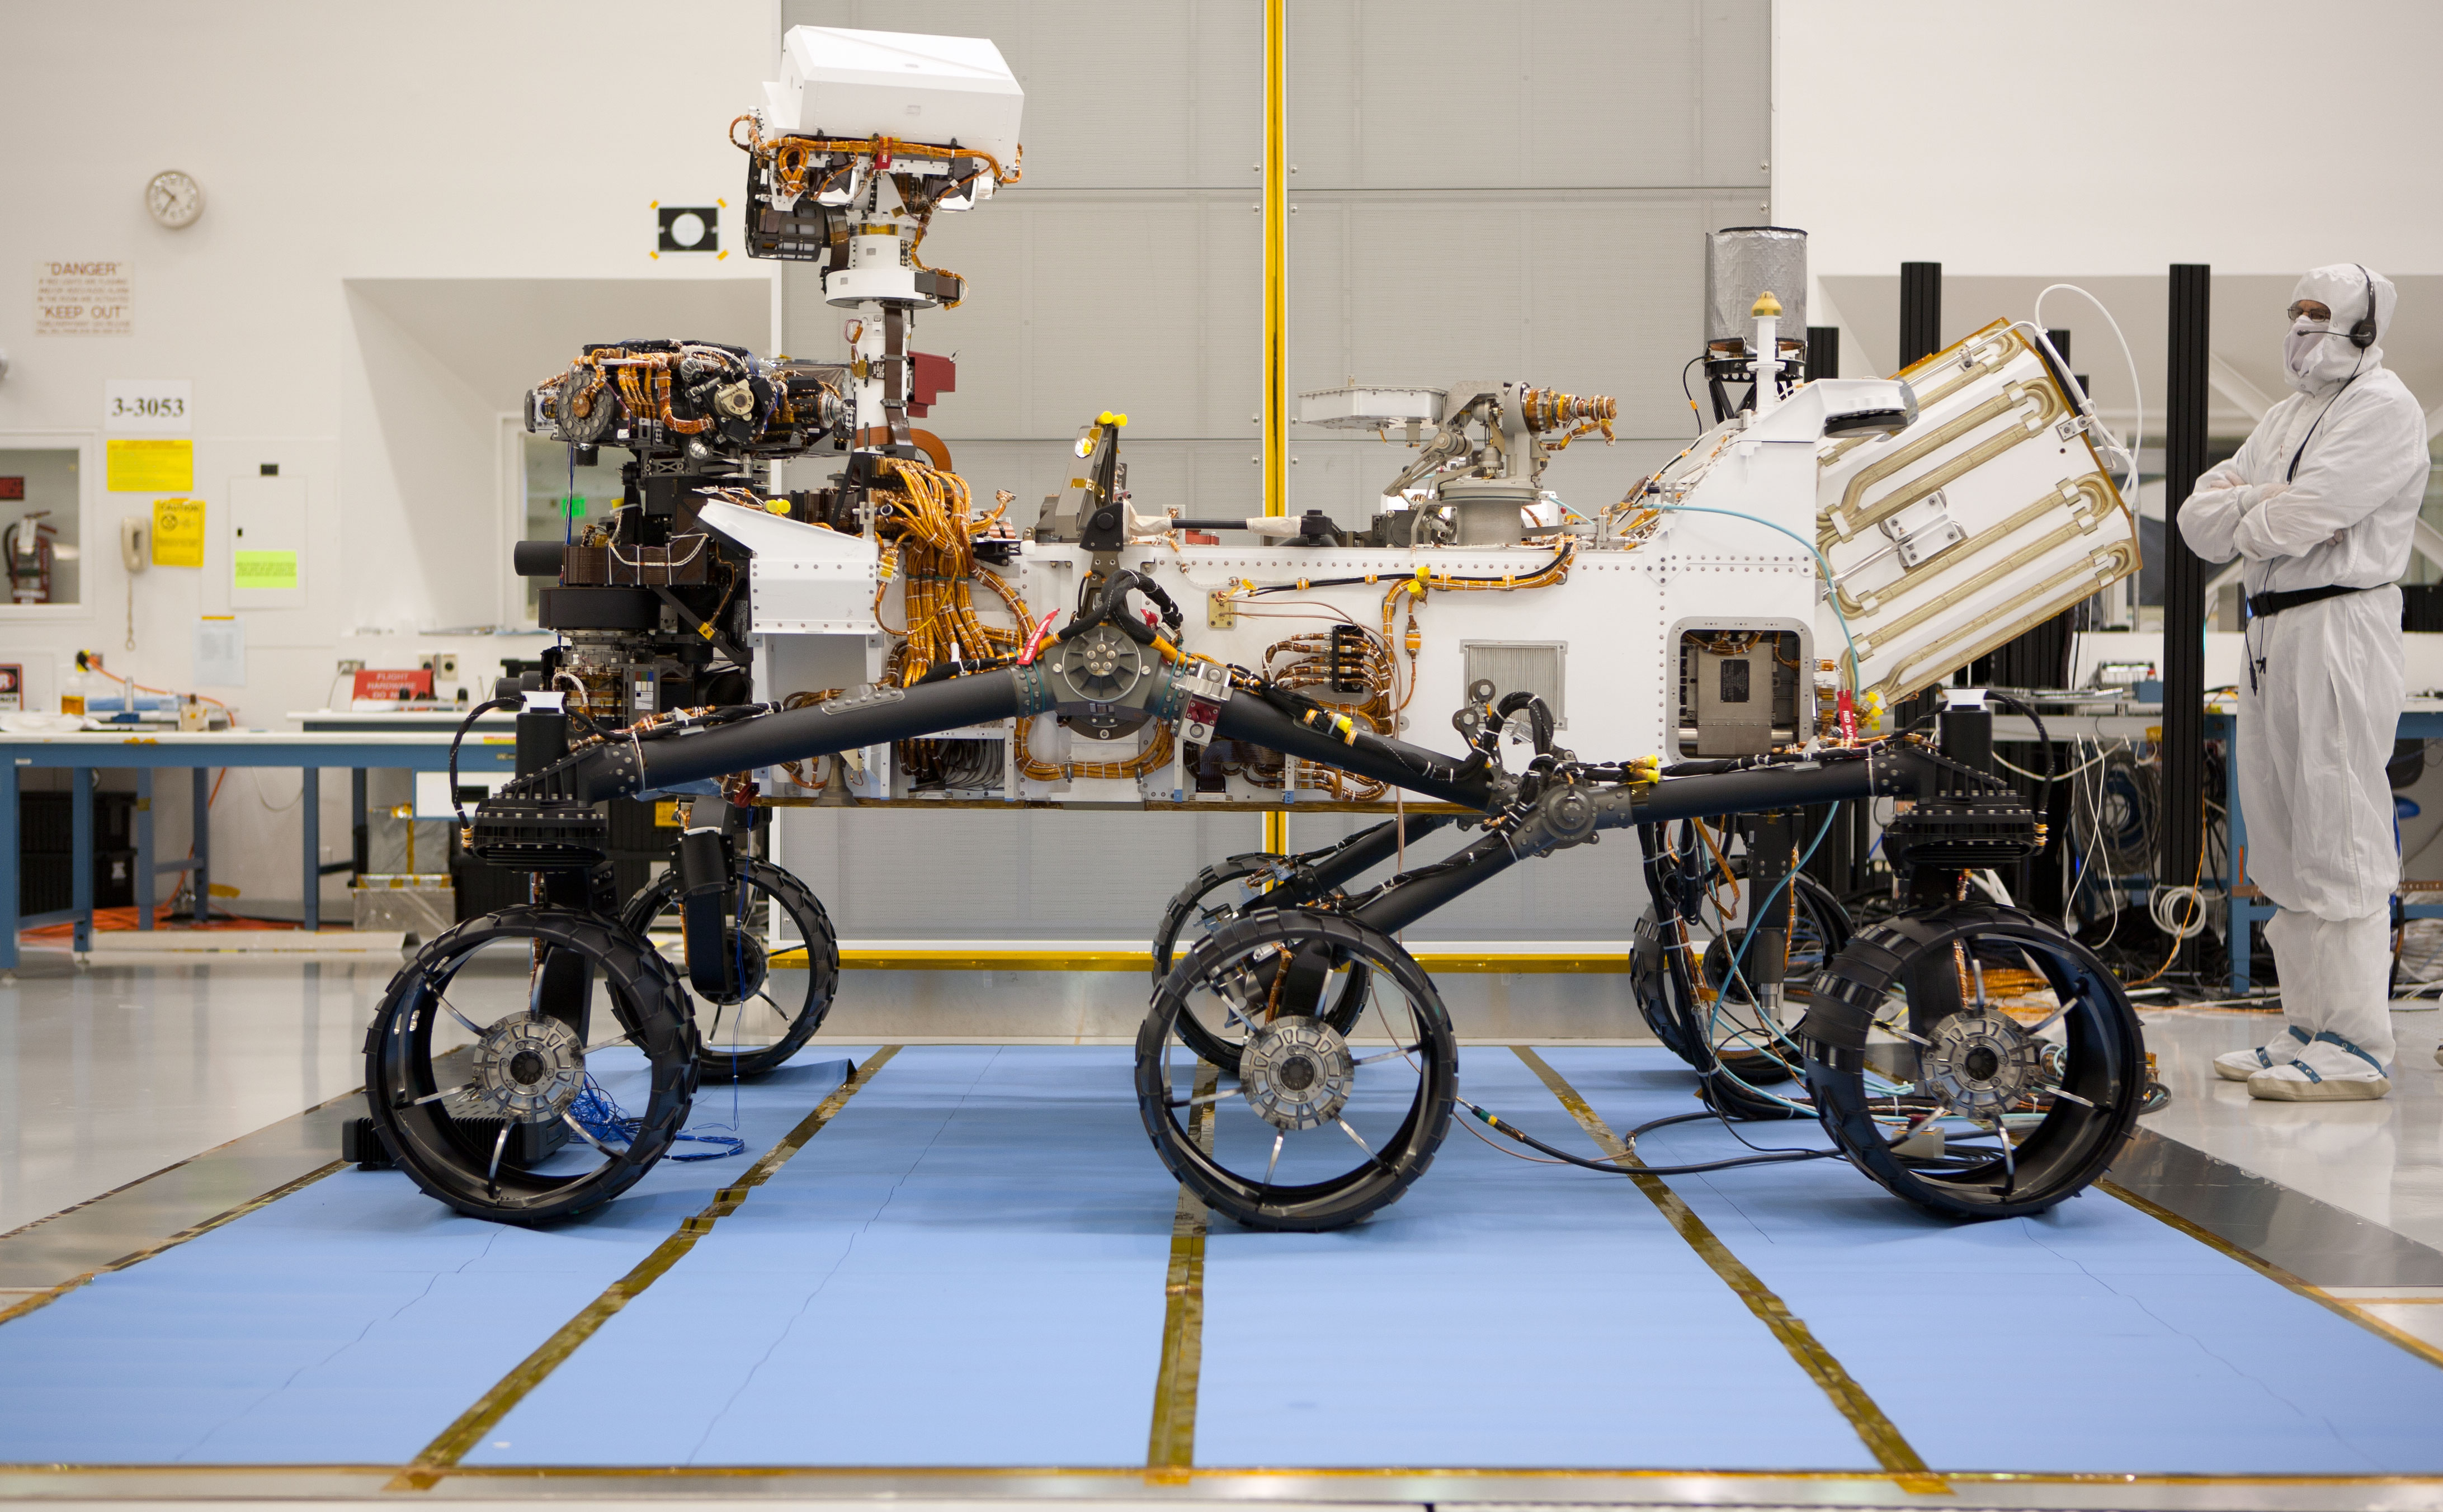 About the size of a small SUV, NASA's Curiosity rover is well equipped for a tour of Gale Crater on Mars.